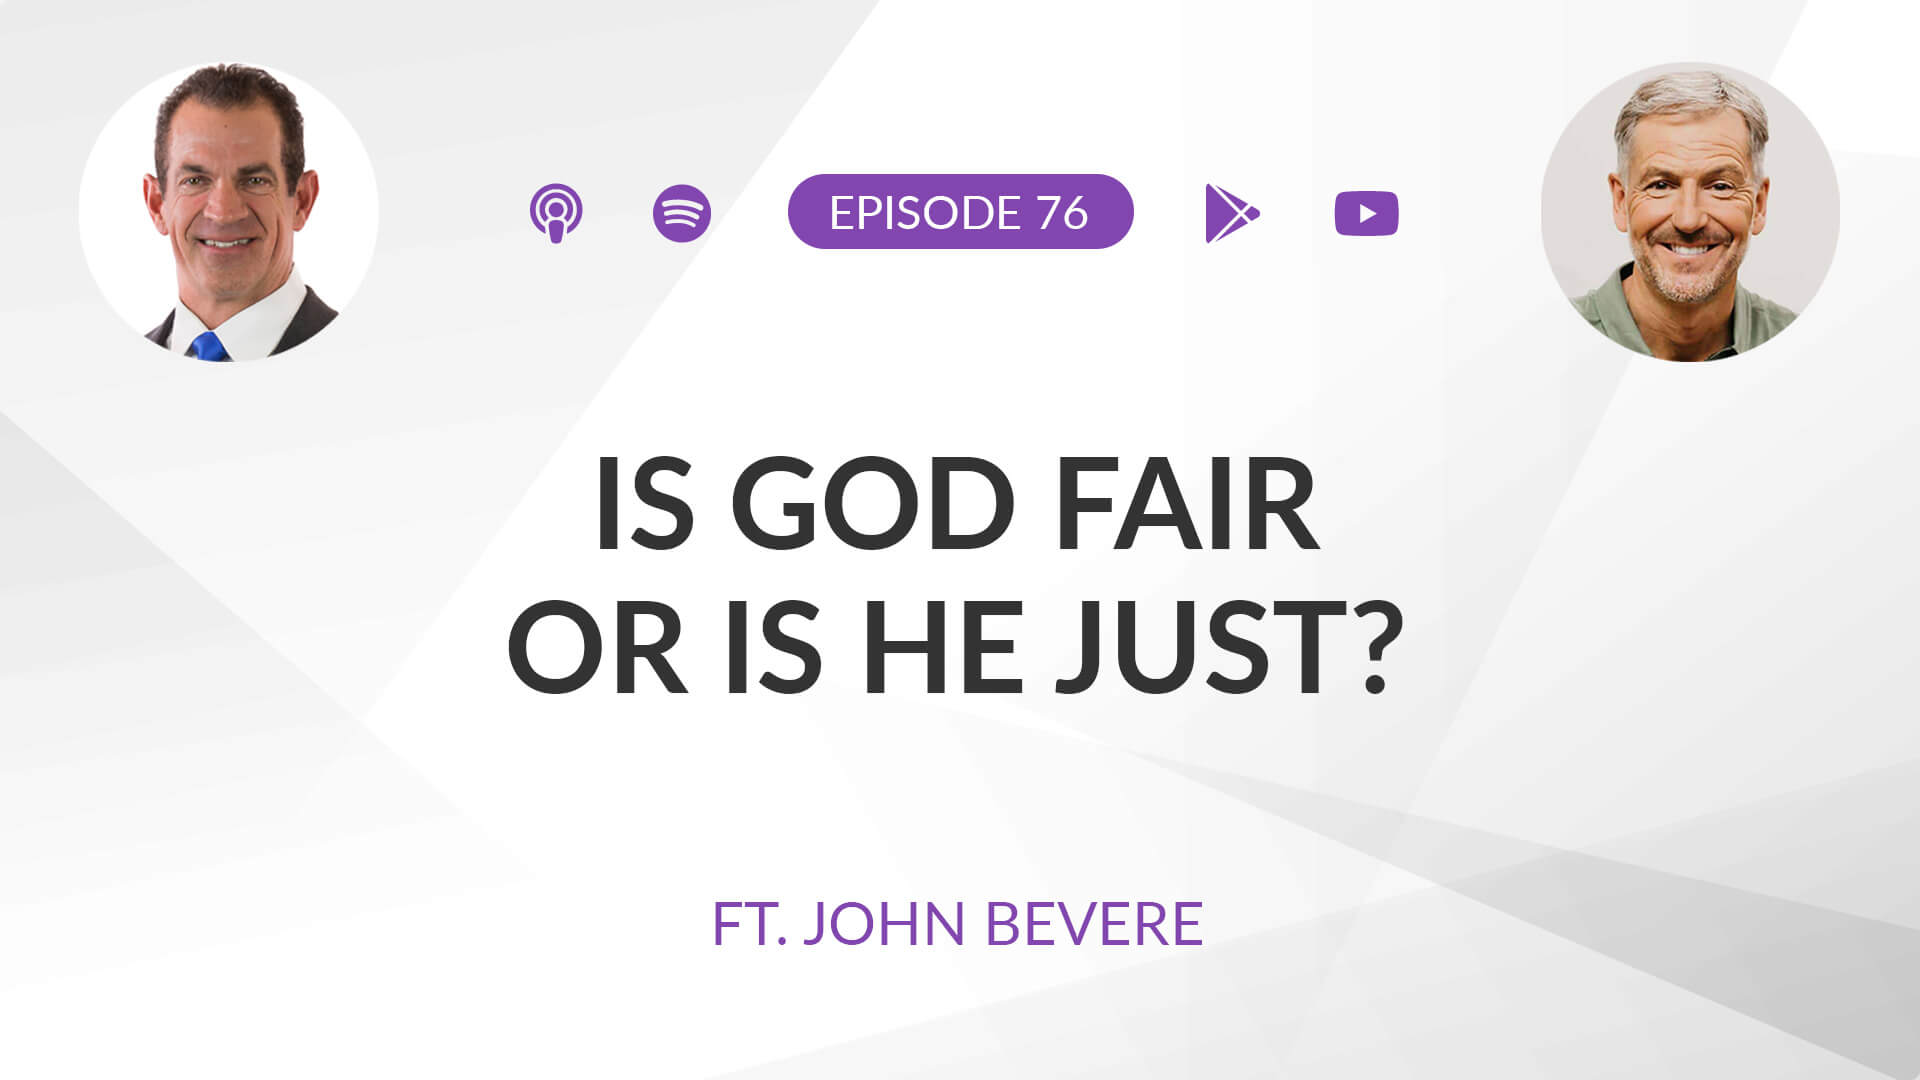 Ep 76: Is God FAIR or Is He JUST? ft. John Bevere